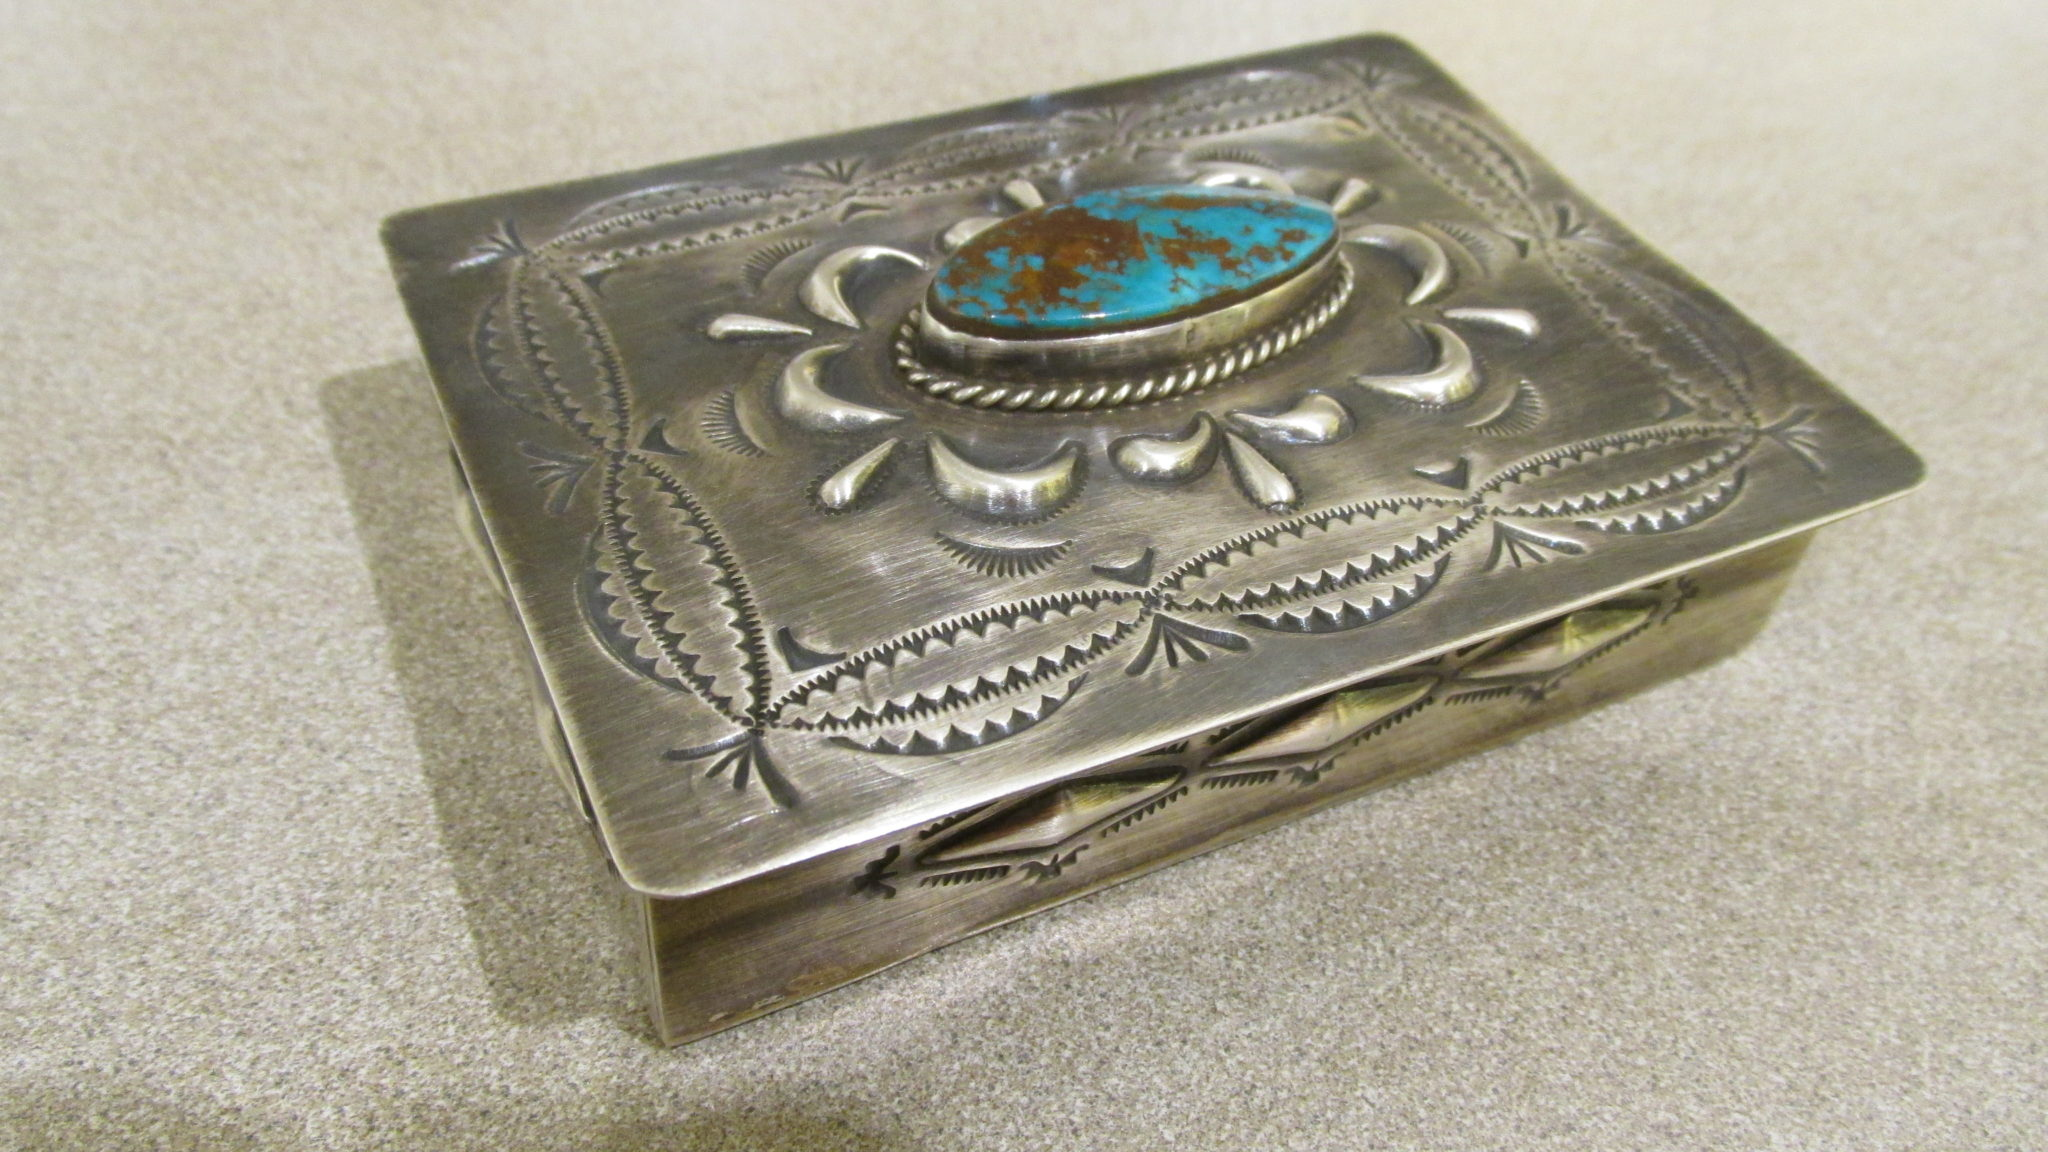 Dean Sandoval Navajo sterling silver box with turquoise accent